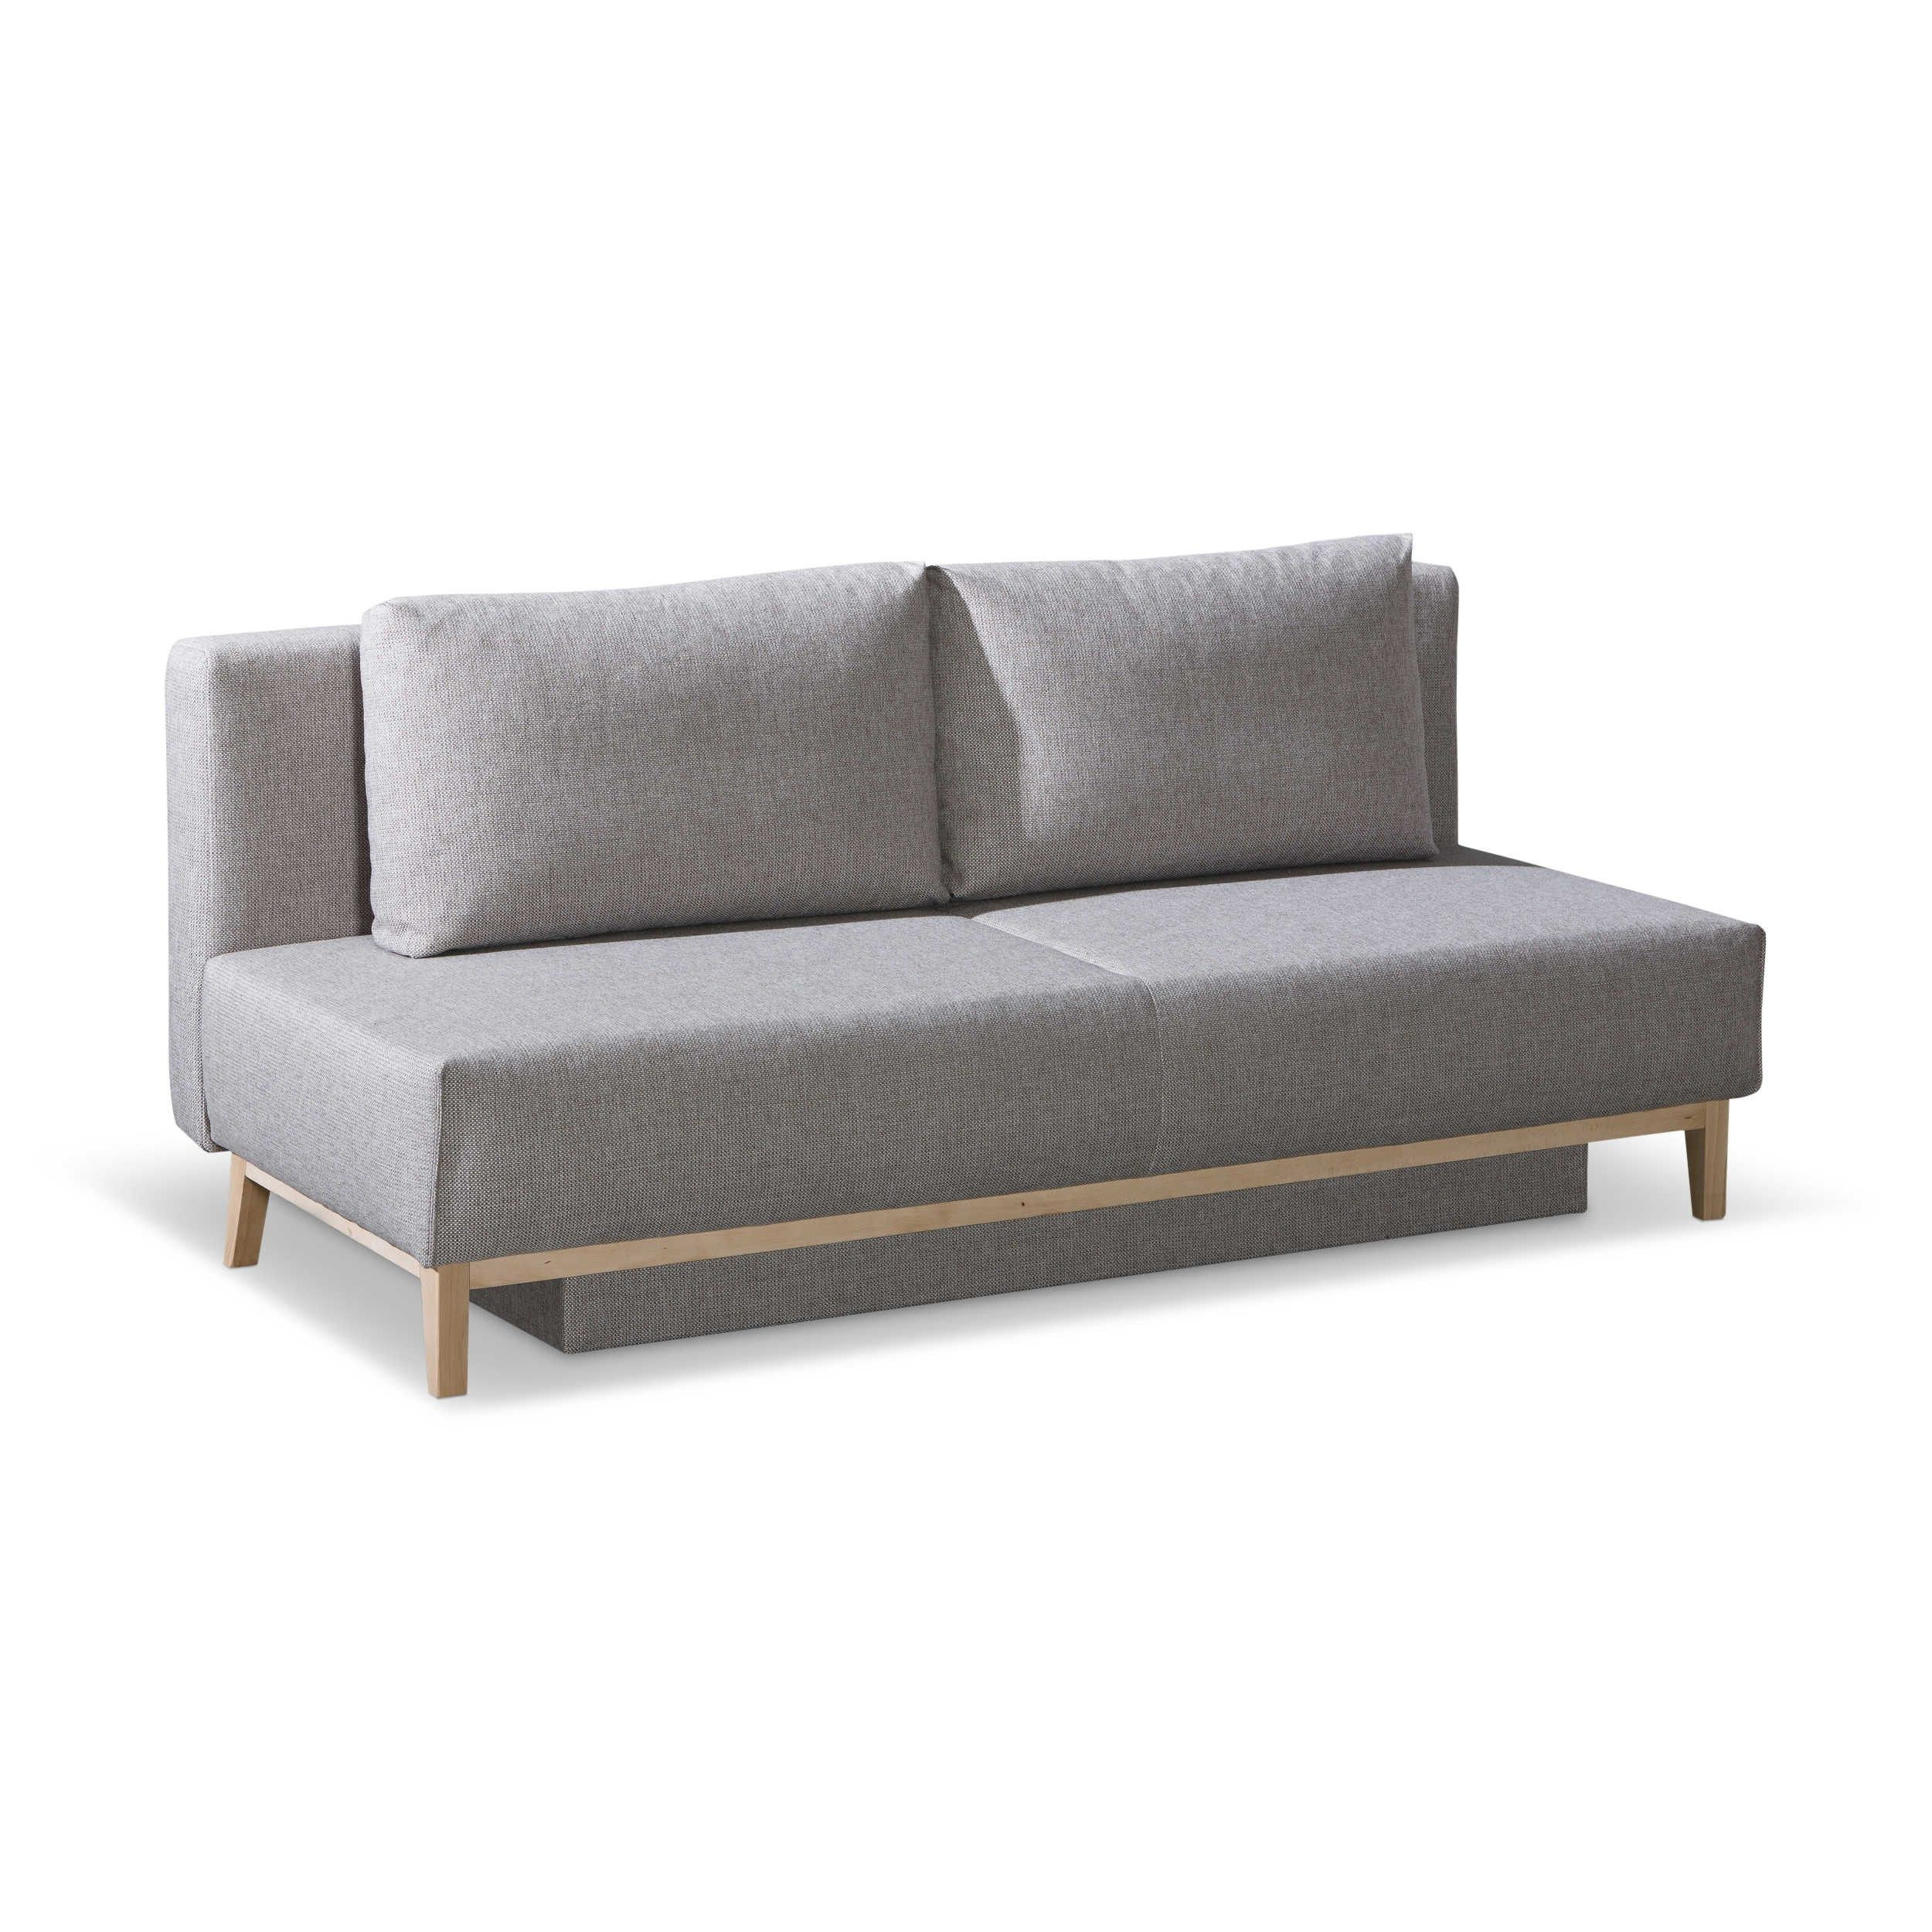 Gallery Of Sofa M Breit With Sofa M Breit With Sofa M With Sofa 2m